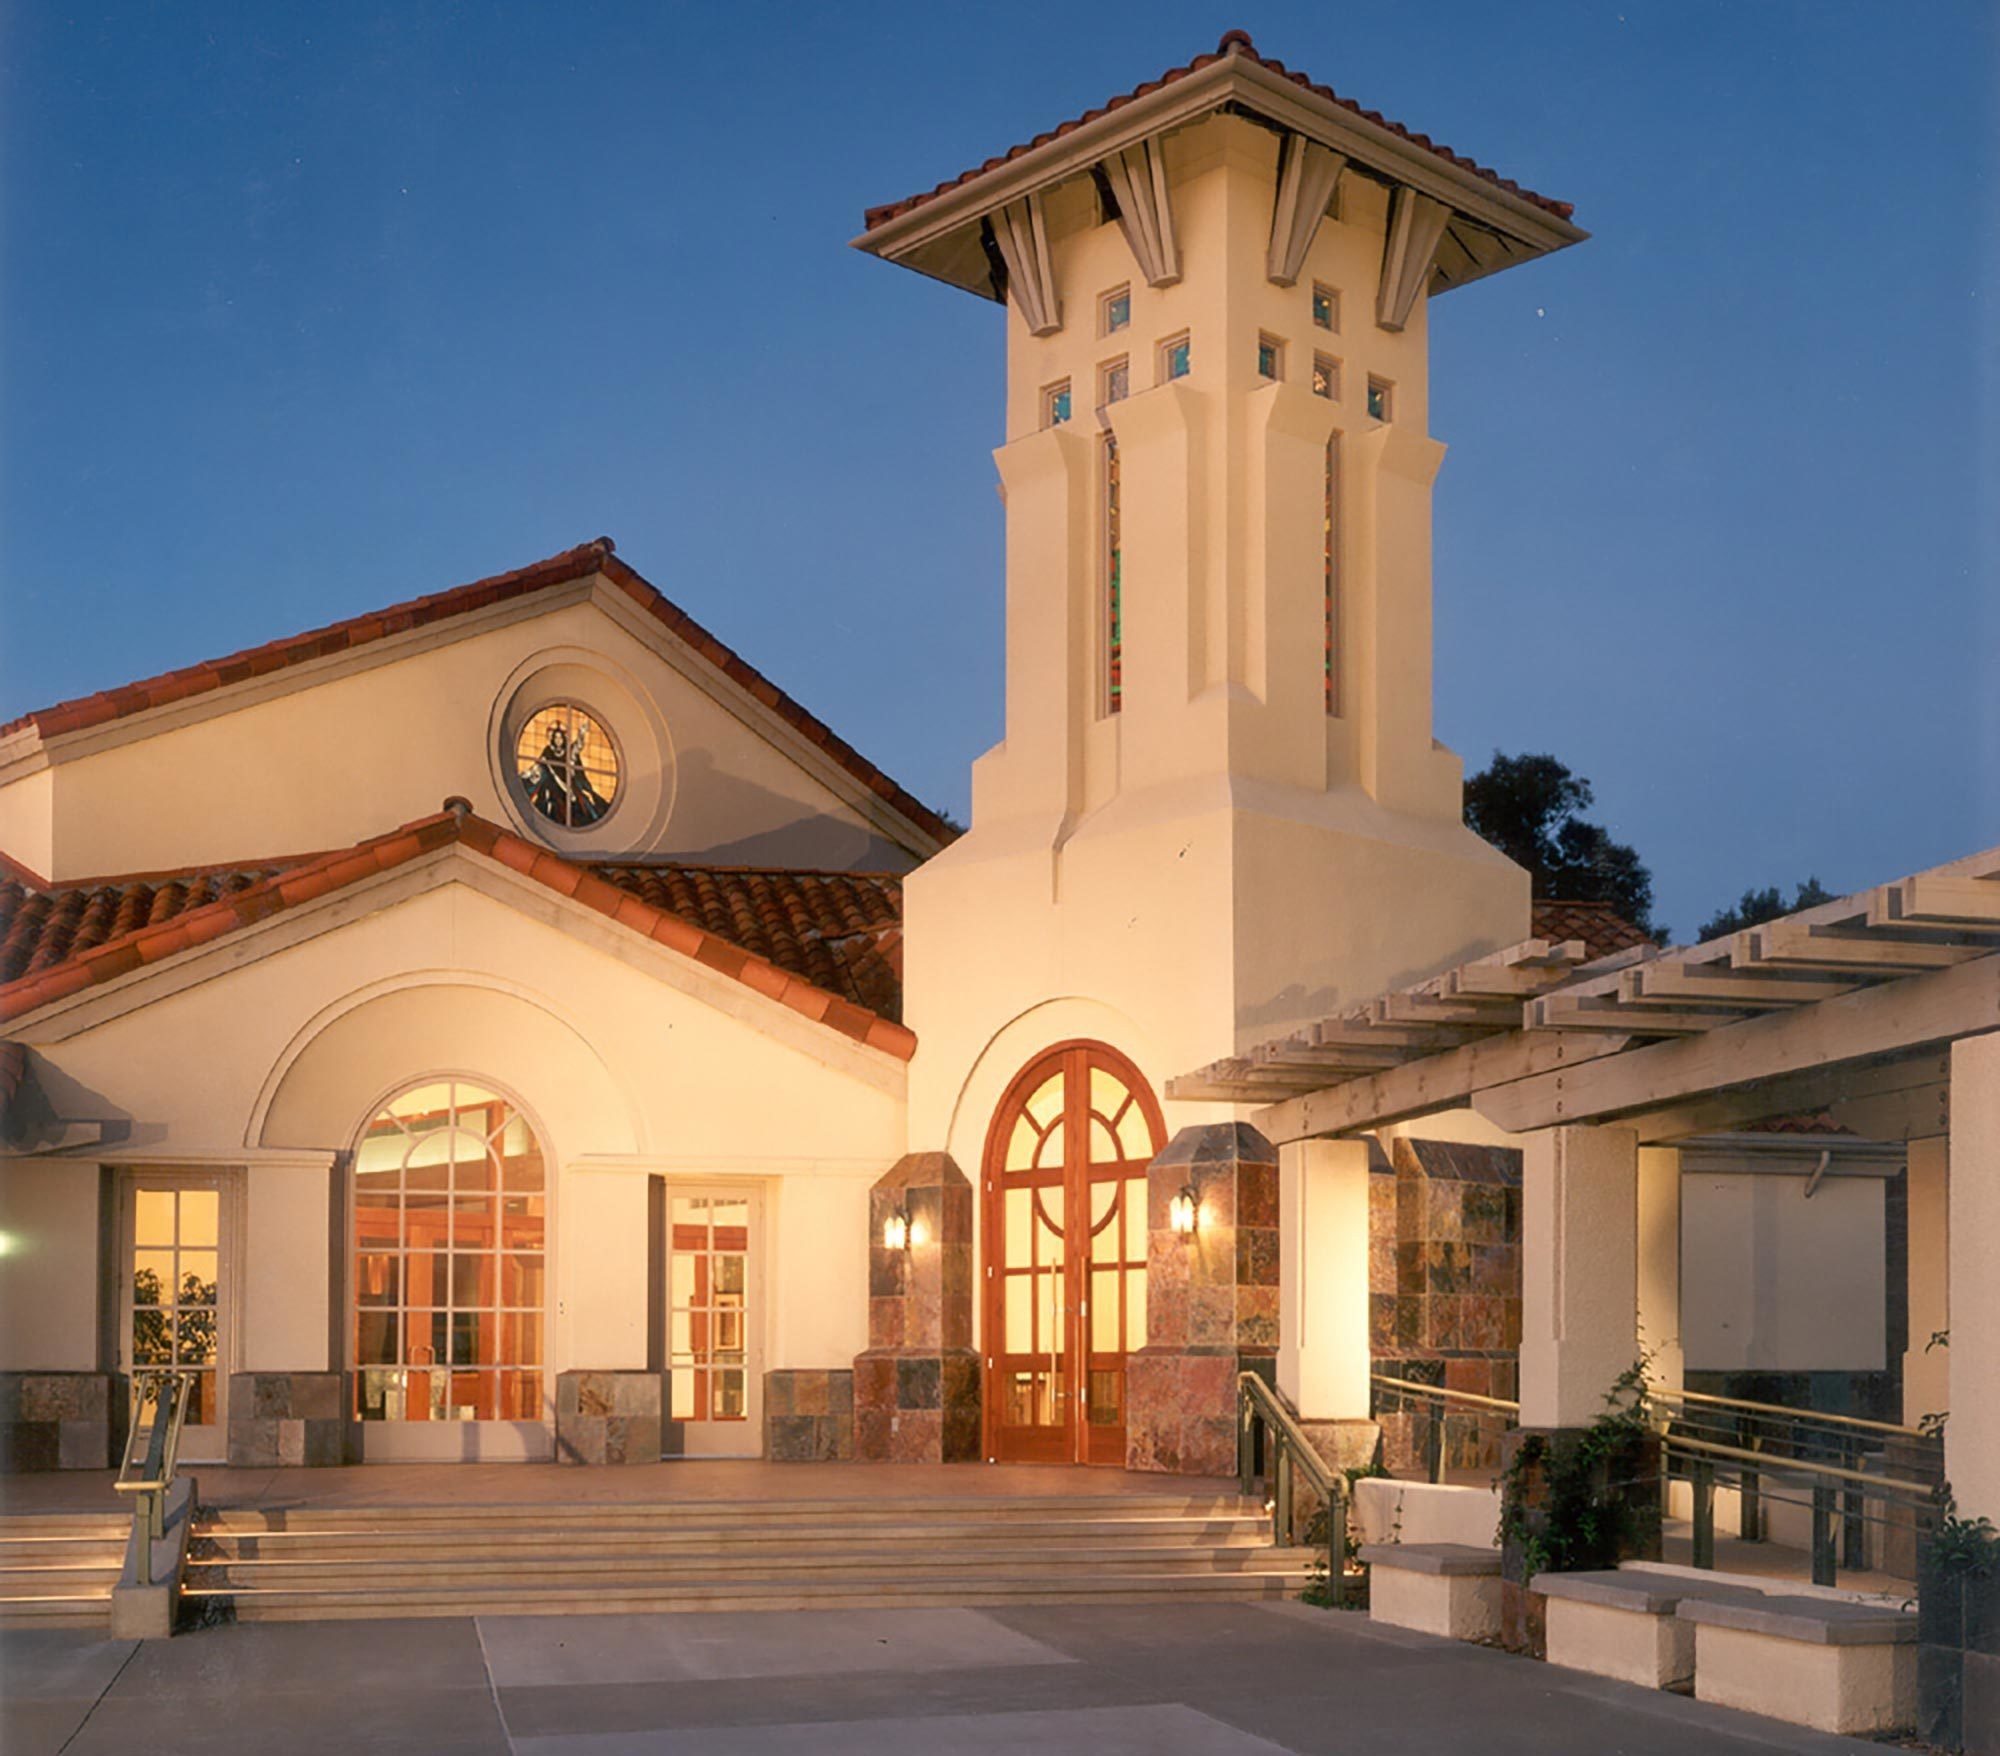 St. Elizabeth Catholic Church, Carlsbad, California